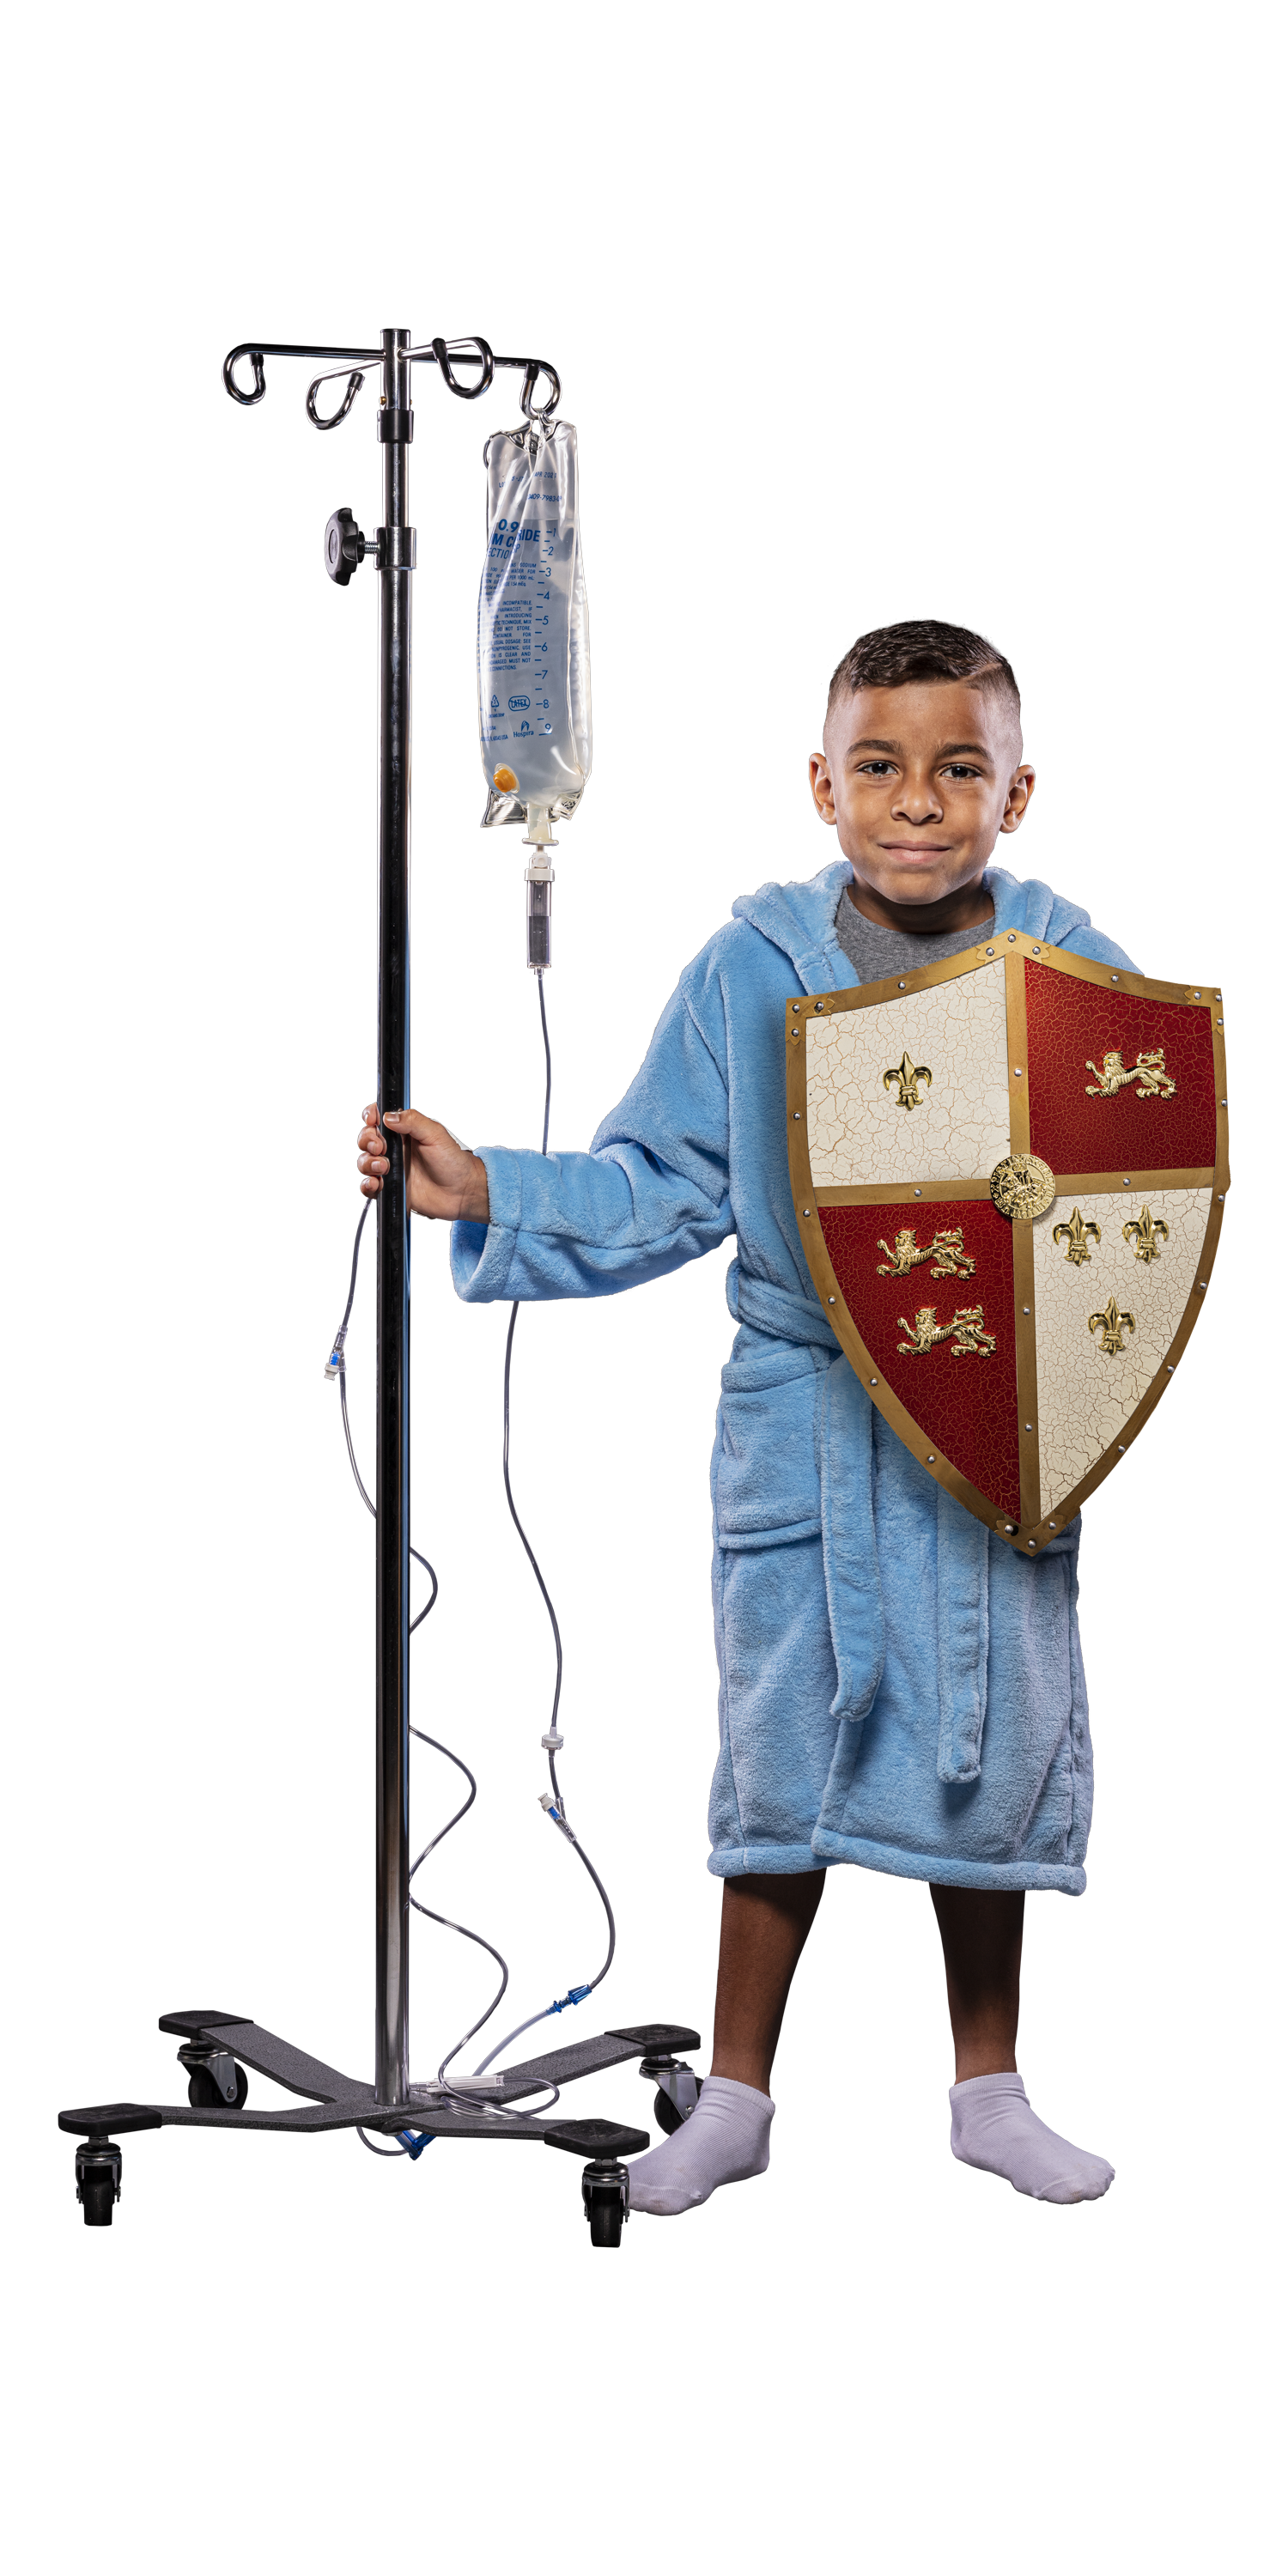 Patient Josiah with shield